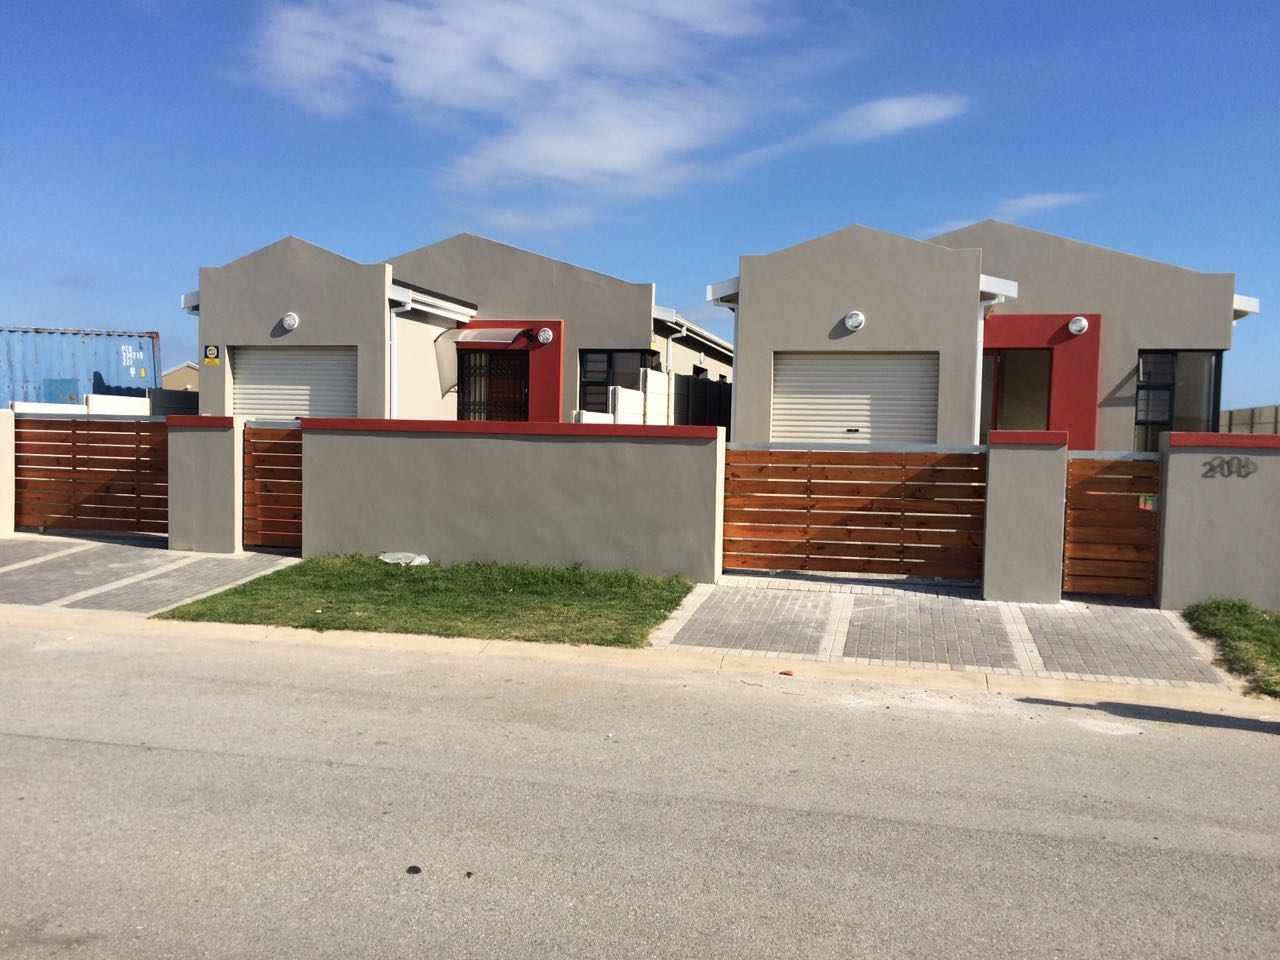 2 BedroomHouse For Sale In Fairview